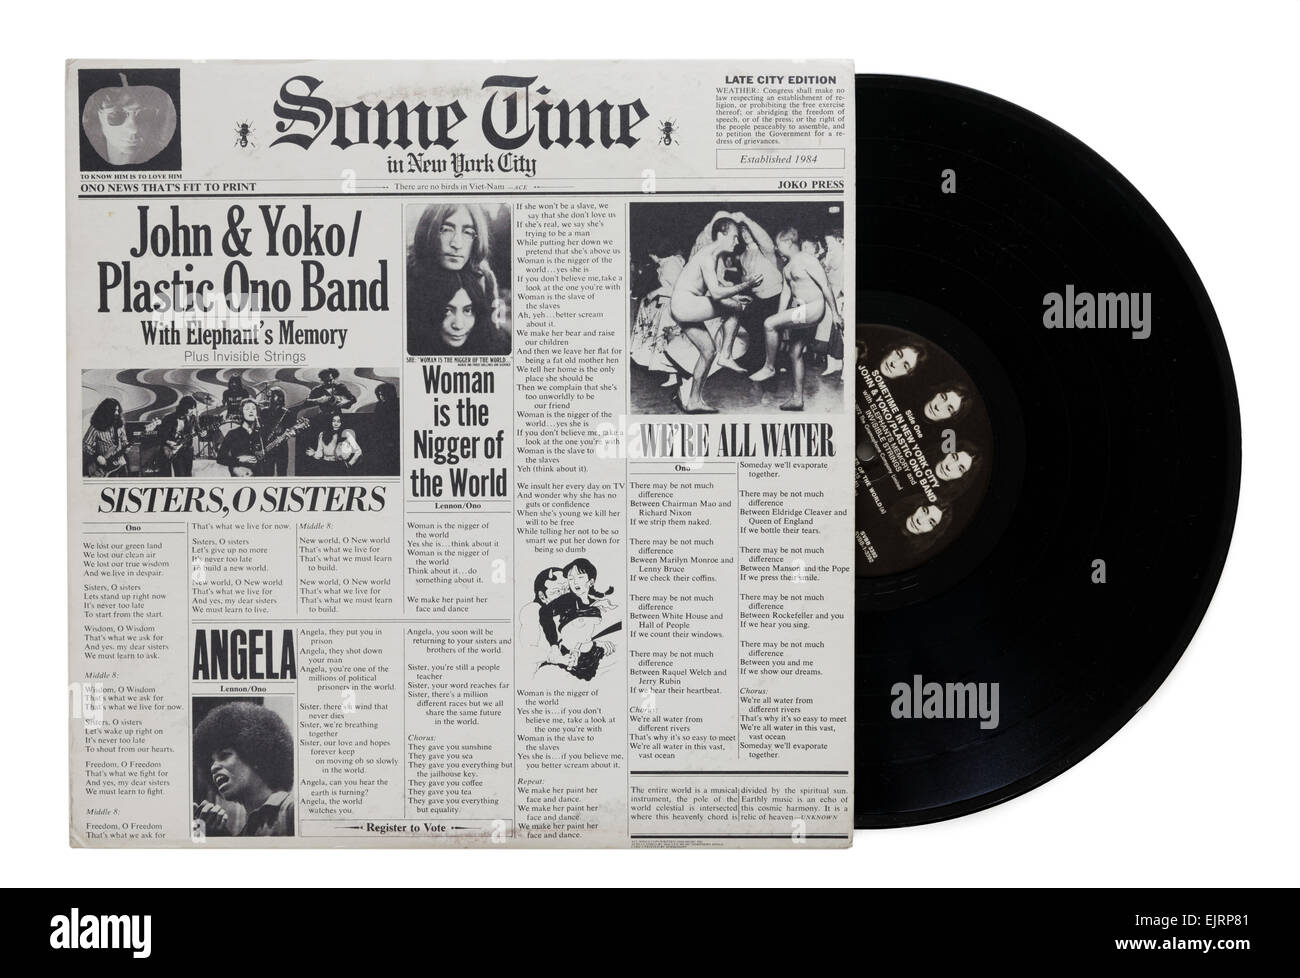 Some Time In New York City Album By John Lennon And Yoko Ono Plastic Stock Photo Alamy